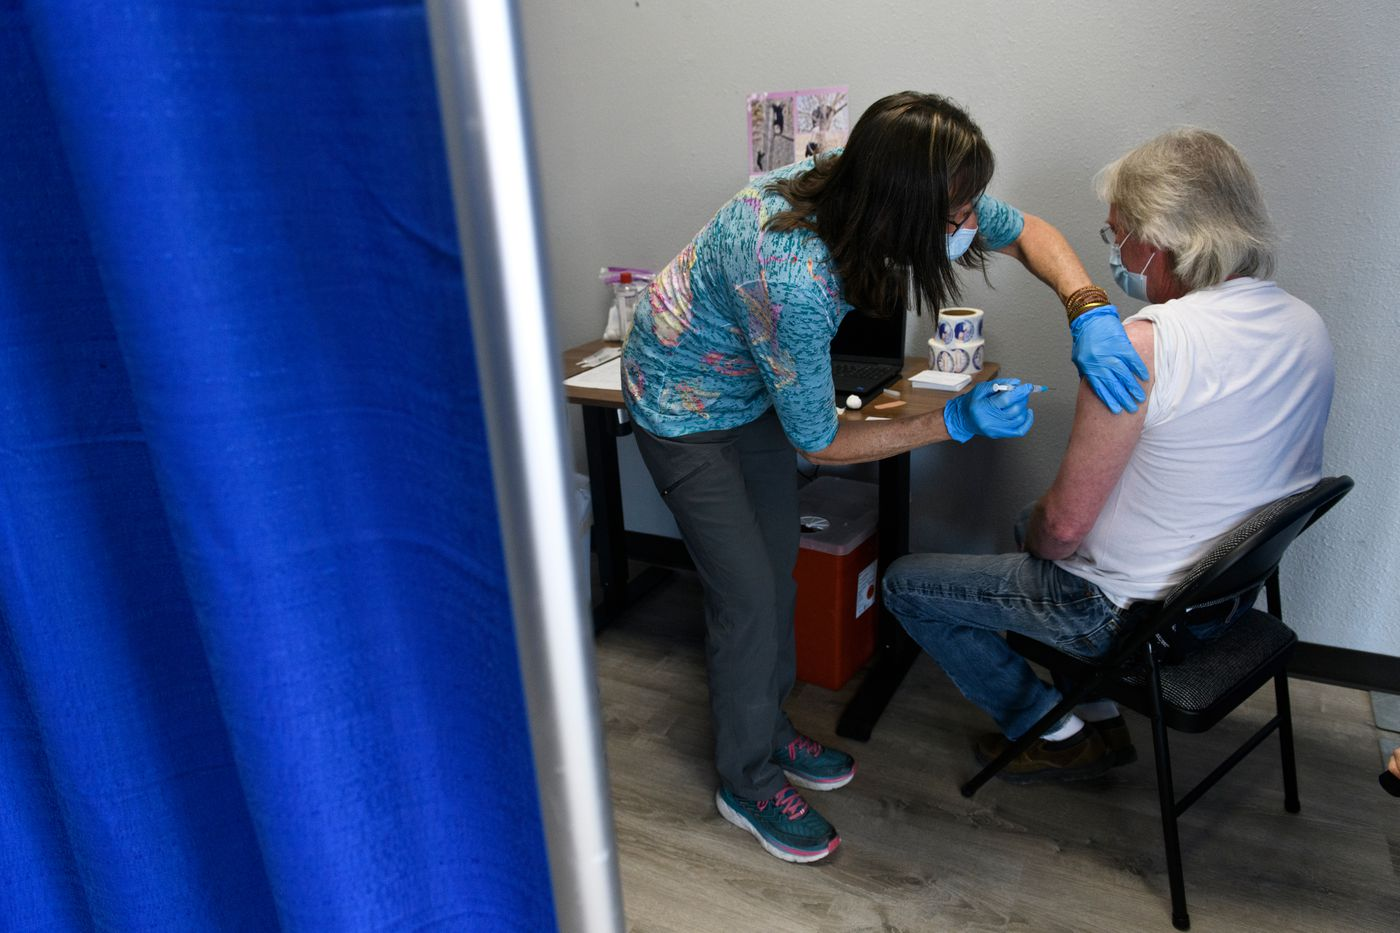 """Kevin Kowalkowski, right, gets a COVID-19 vaccine shot at the Soldotna walk-in clinic on May 26, 2021. """"I got my yard work done and my wife kept bugging me,"""" Kowalski said about why he decided to come in. (Marc Lester / ADN)"""